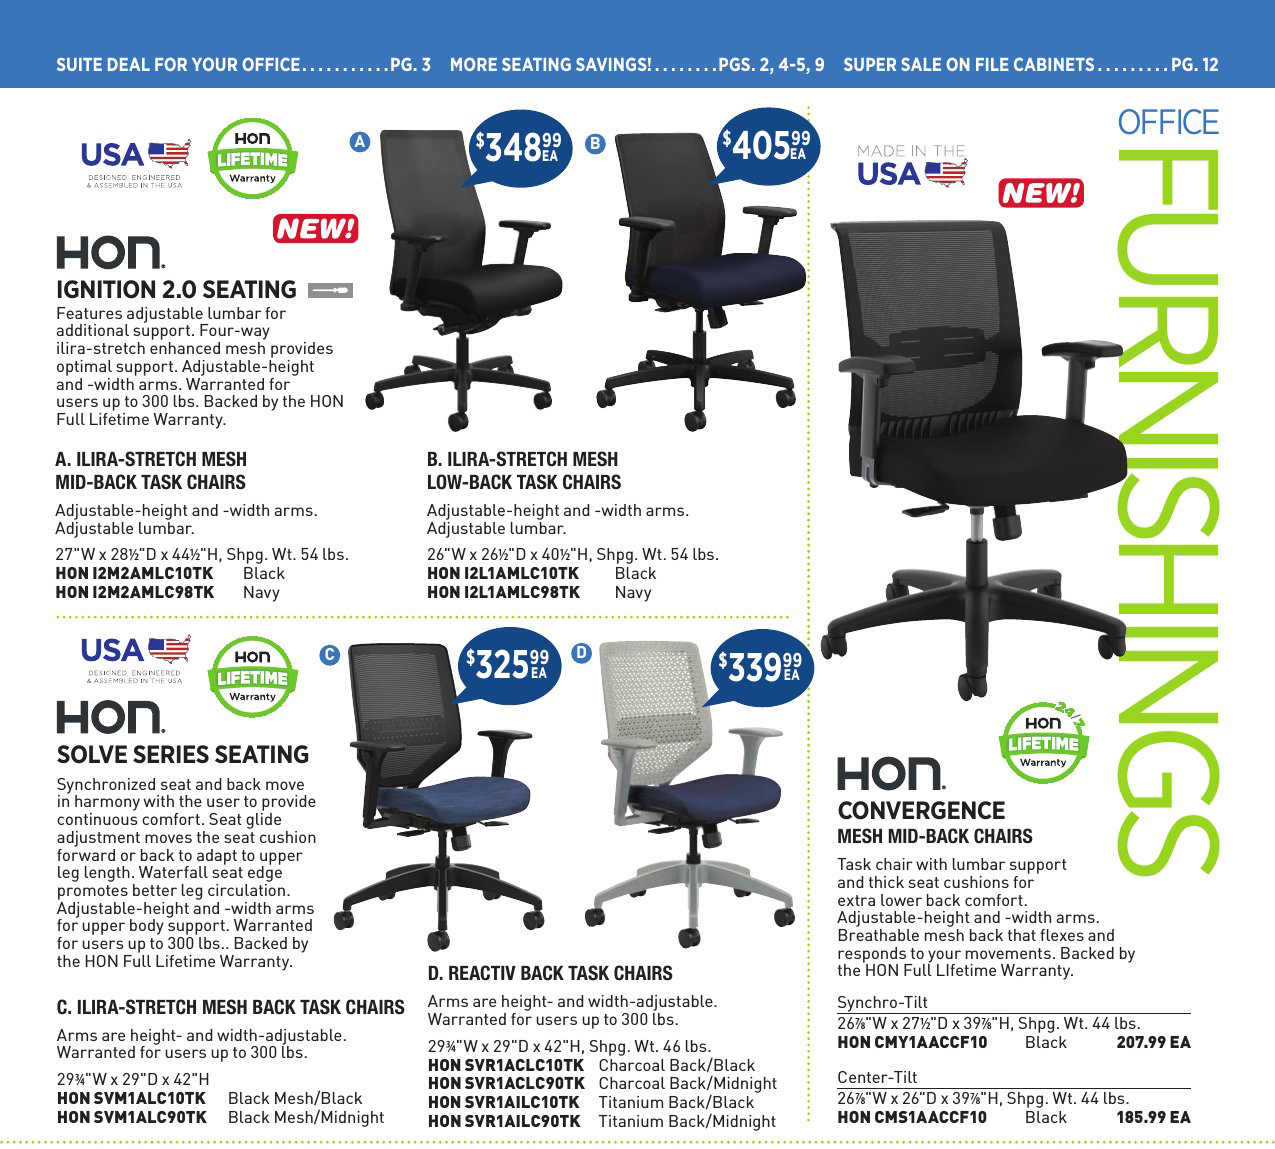 Office Furnishings Catalog